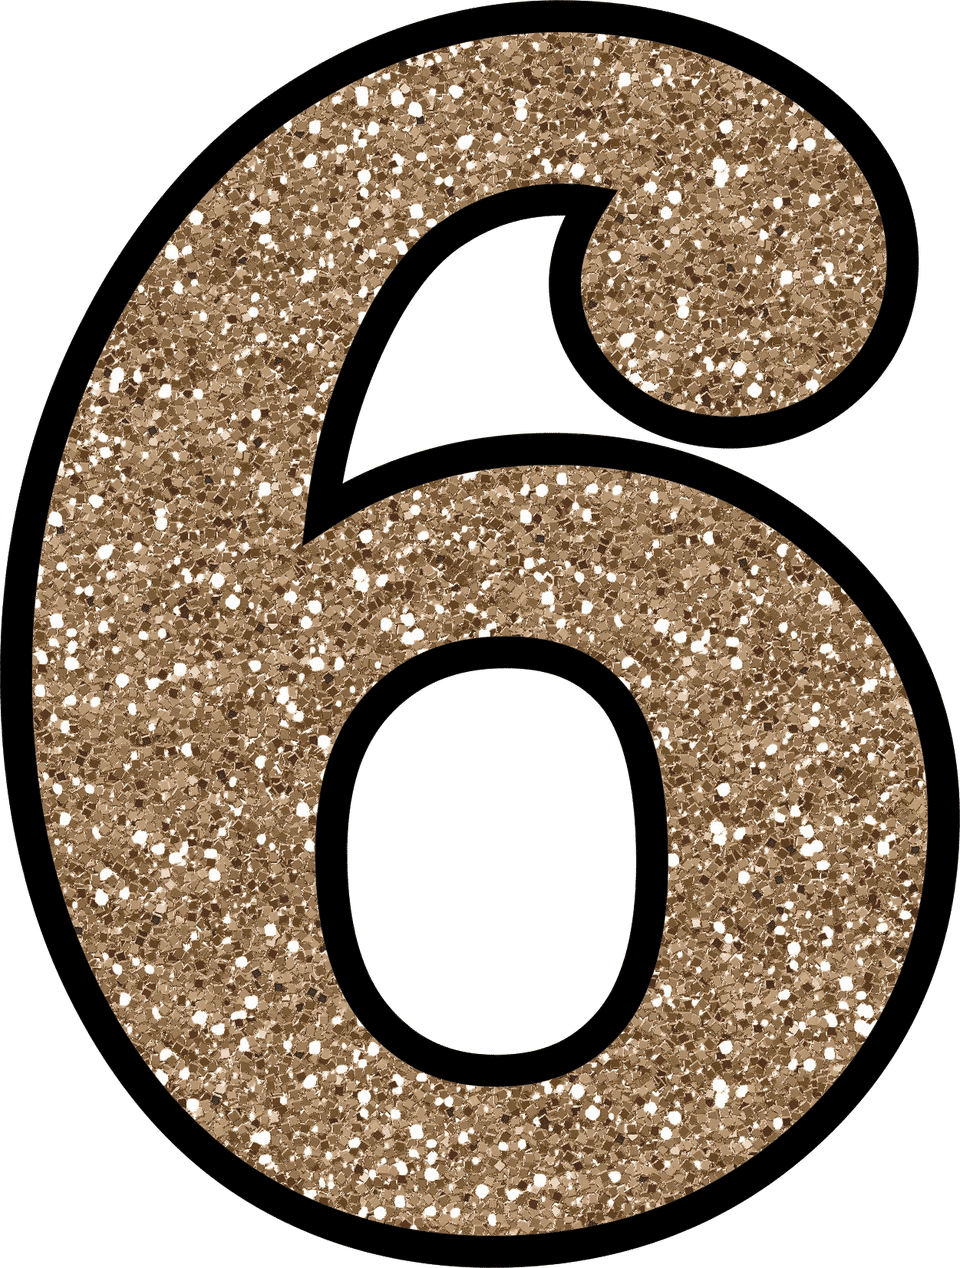 Number 2 clipart glittery. Glitter without the mess